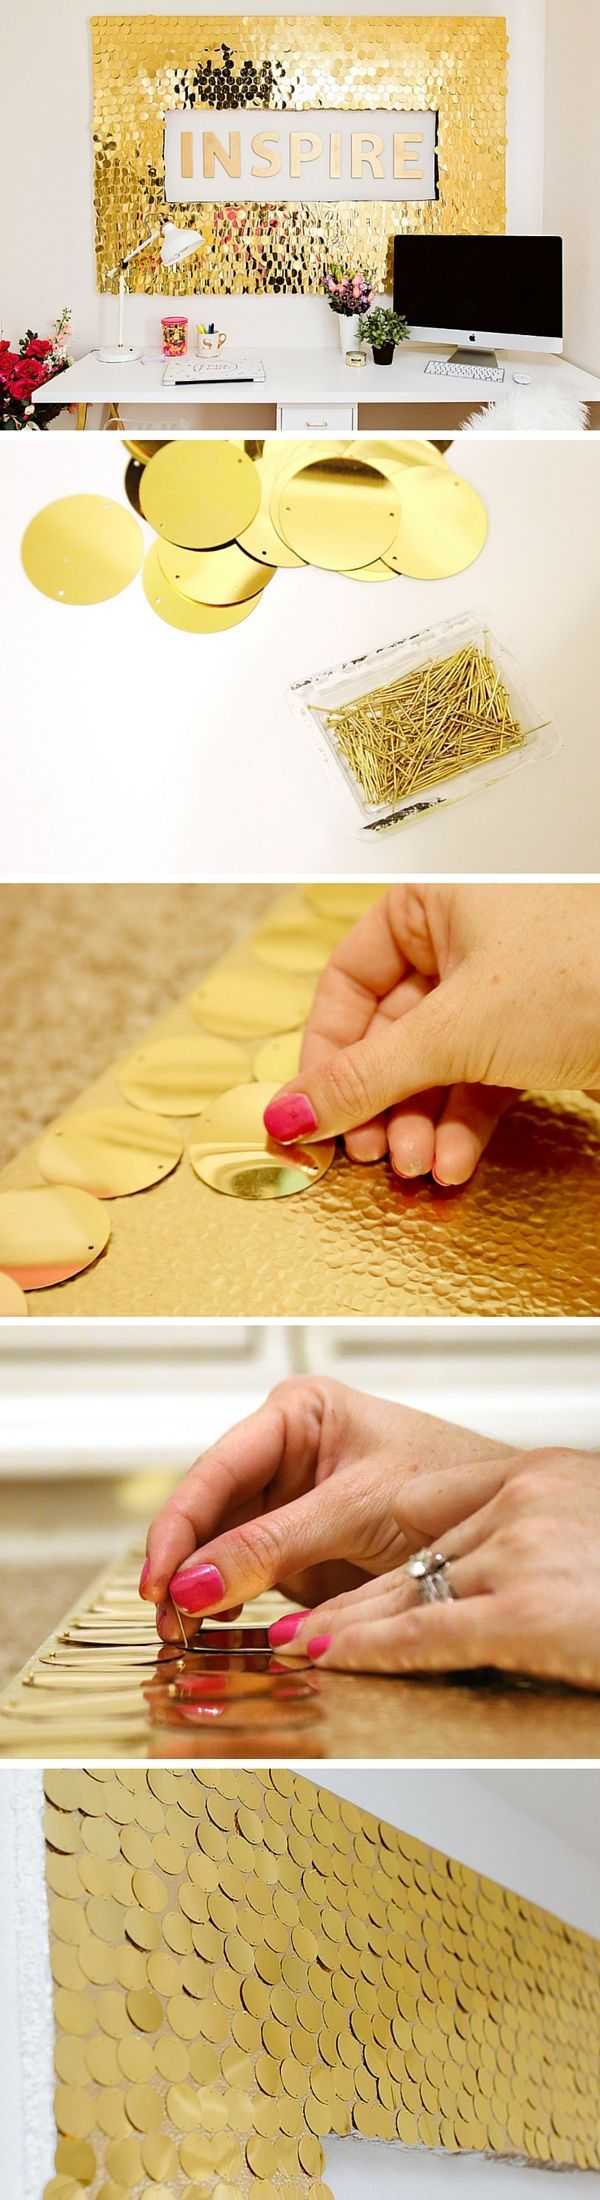 1265 best DIY Wall Art images on Pinterest | Craft ideas, Craft ...